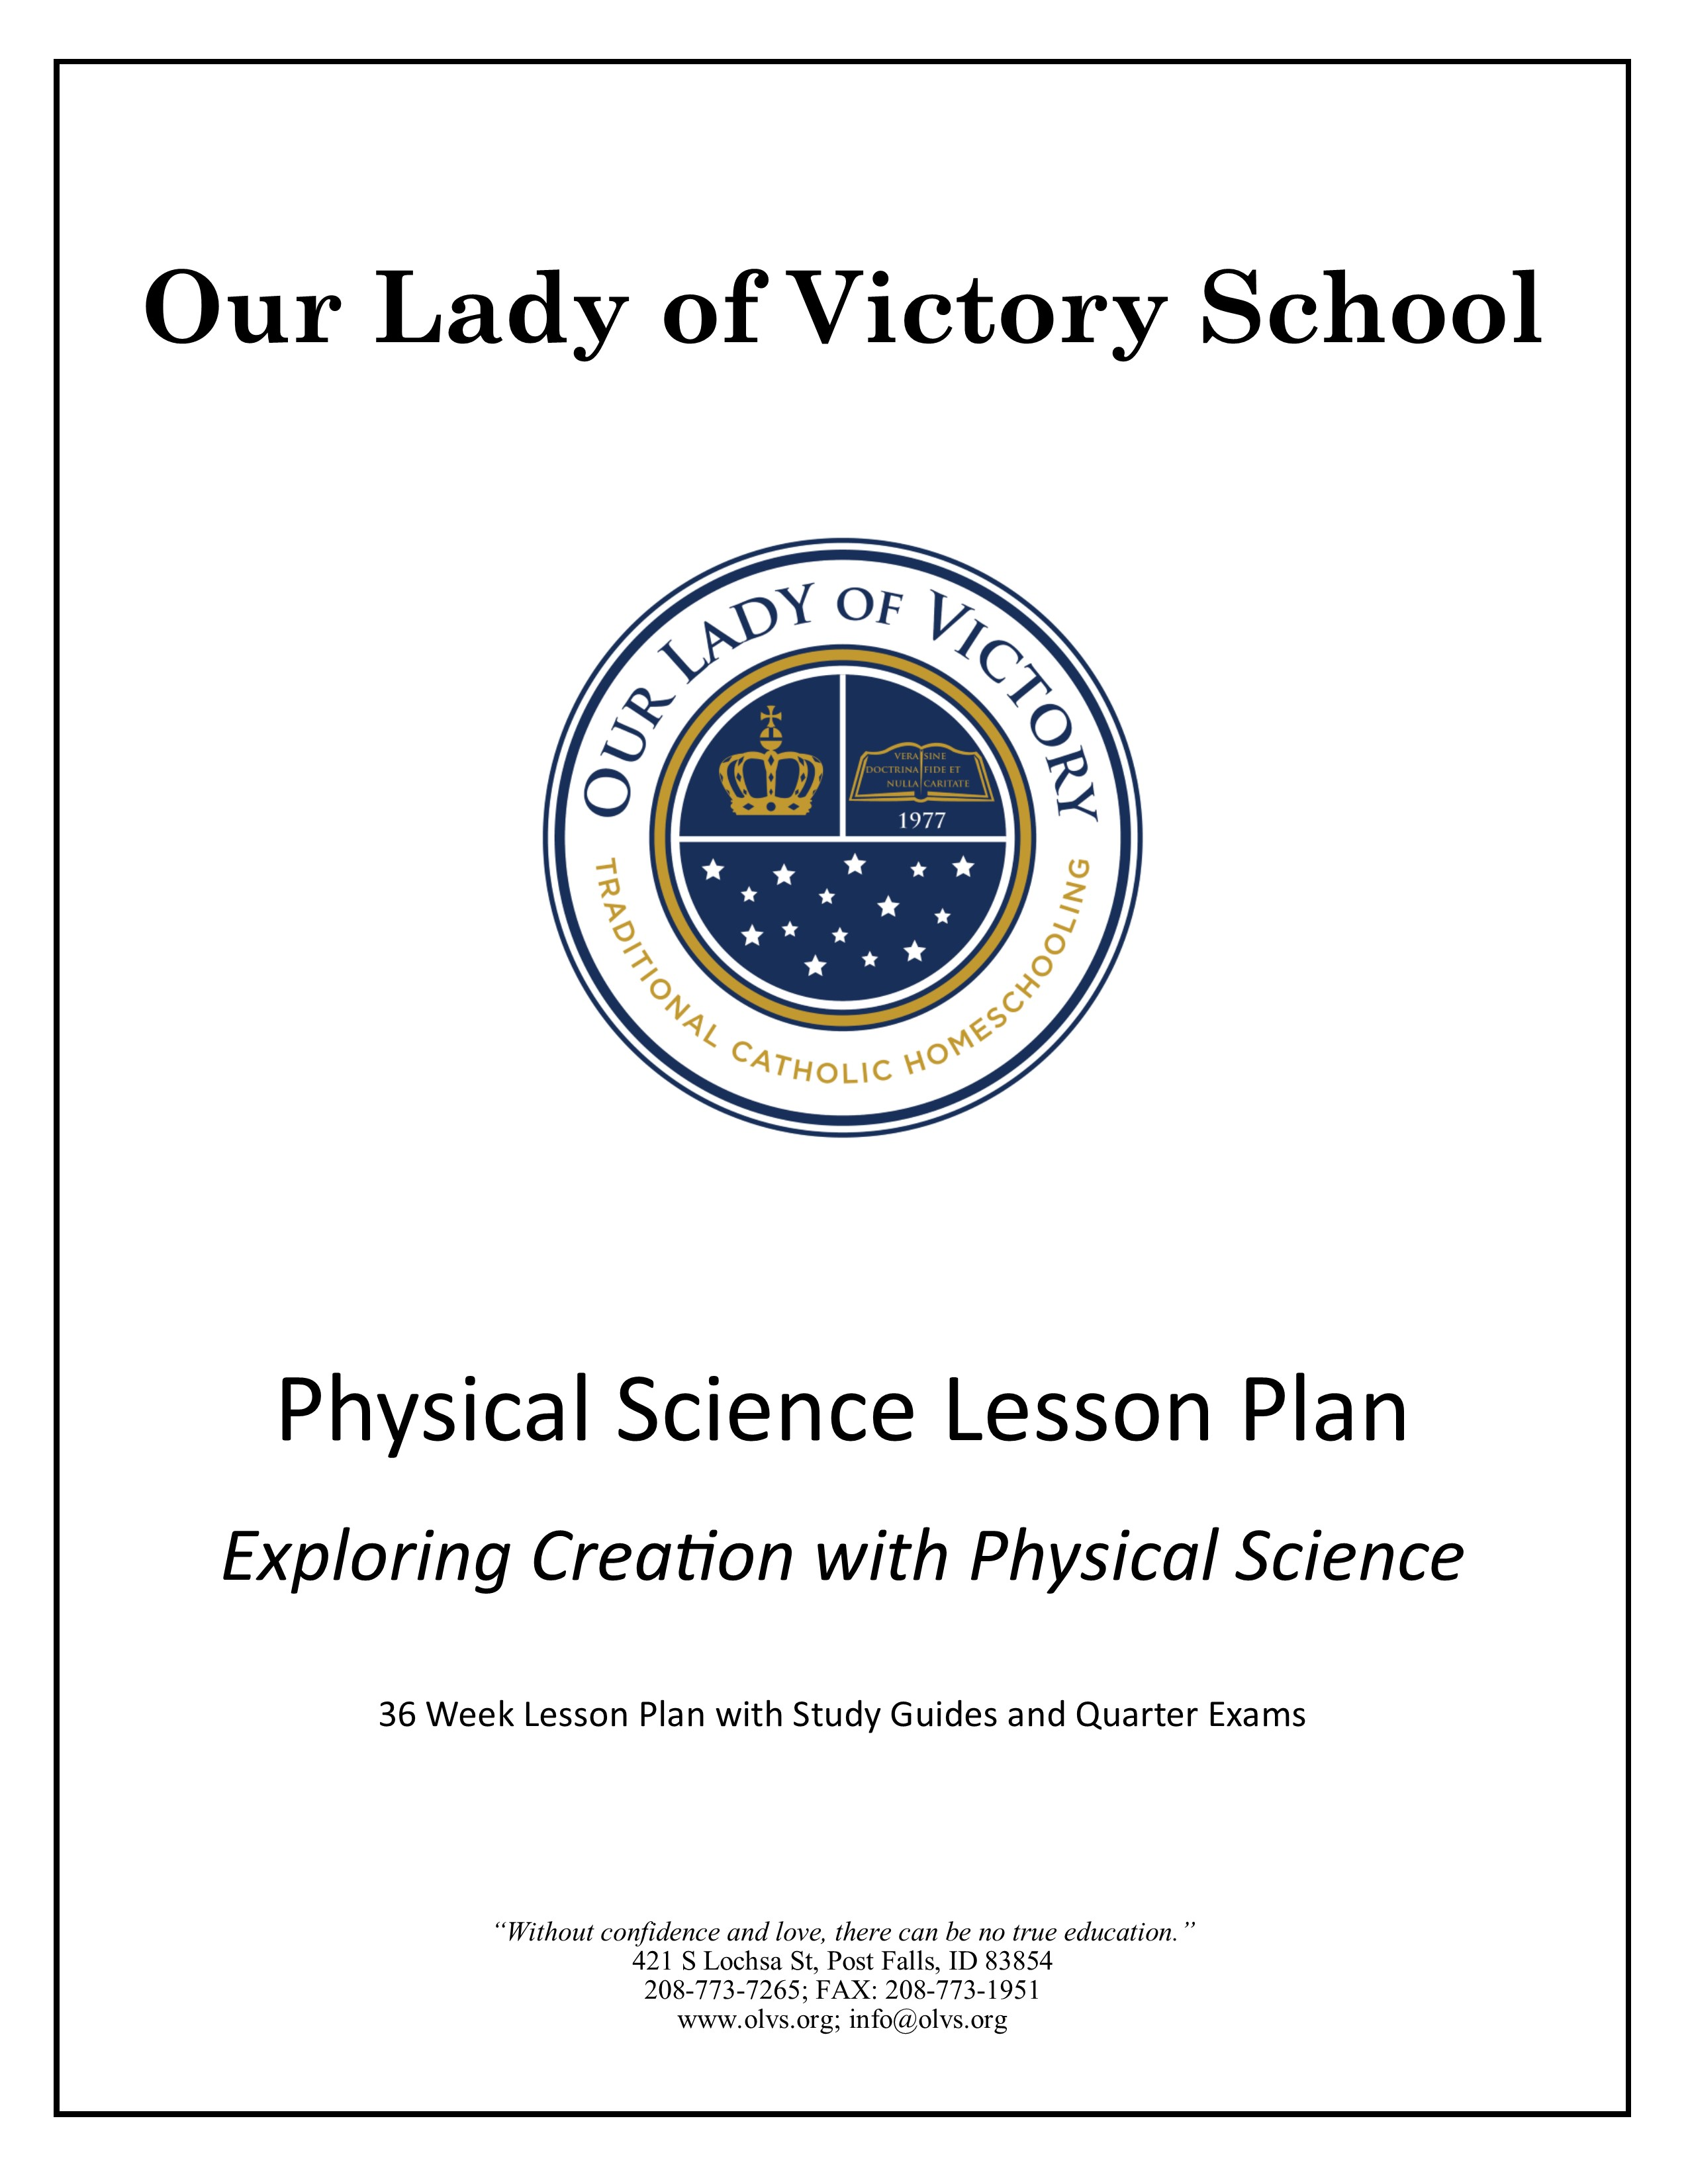 Lesson Plans Grade 09 Physical Science Our Lady Of Victory School